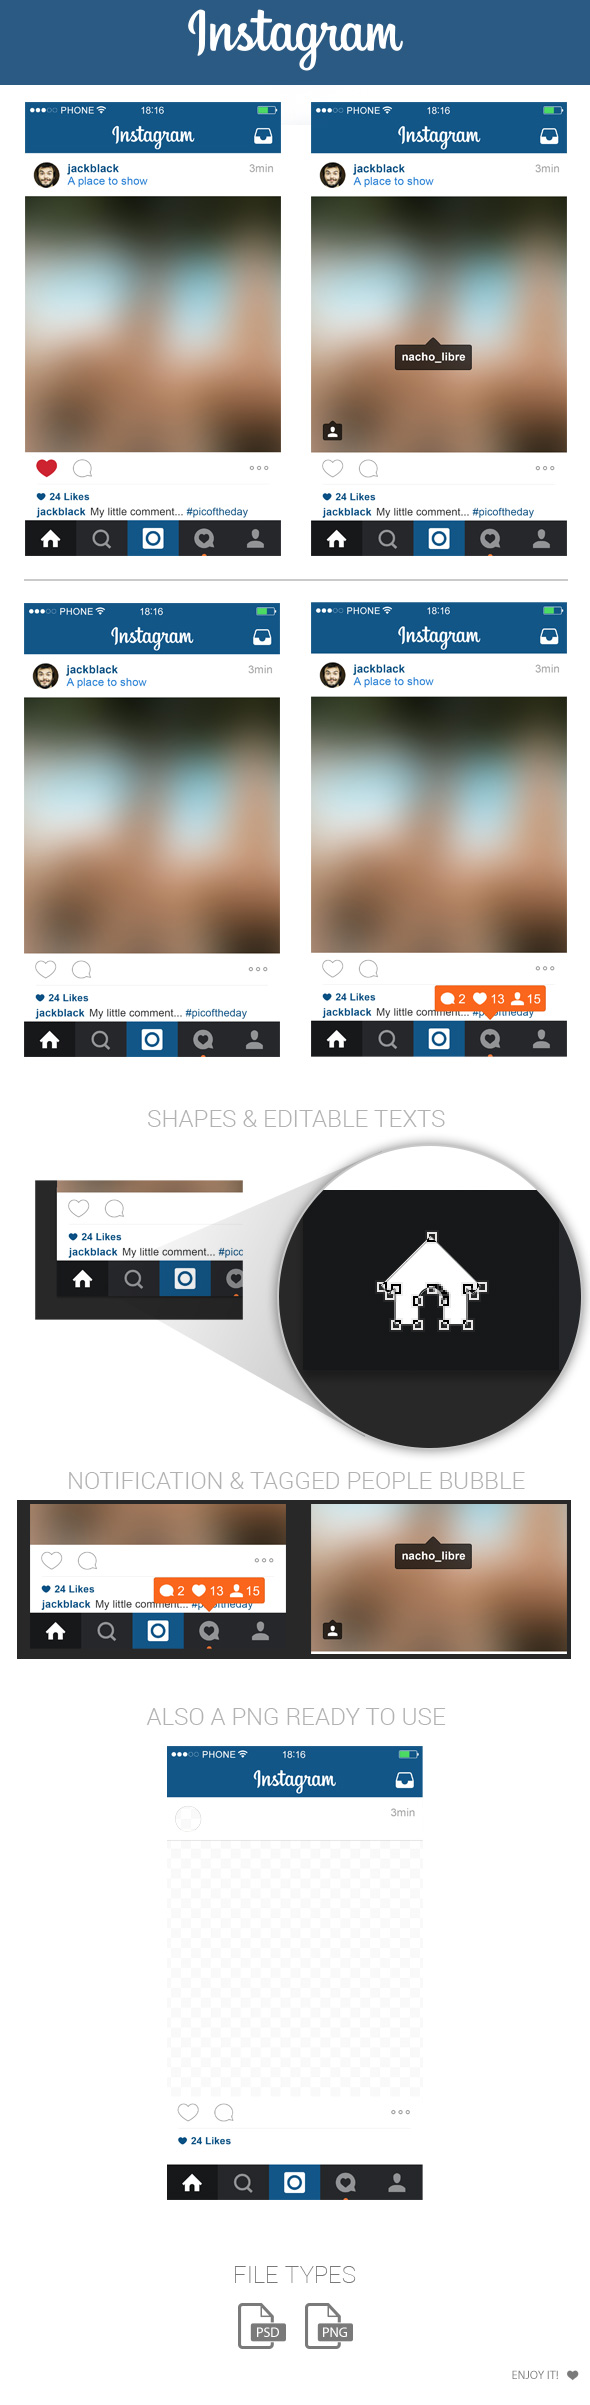 free instagram home layout ui psd may 2015 by marinad